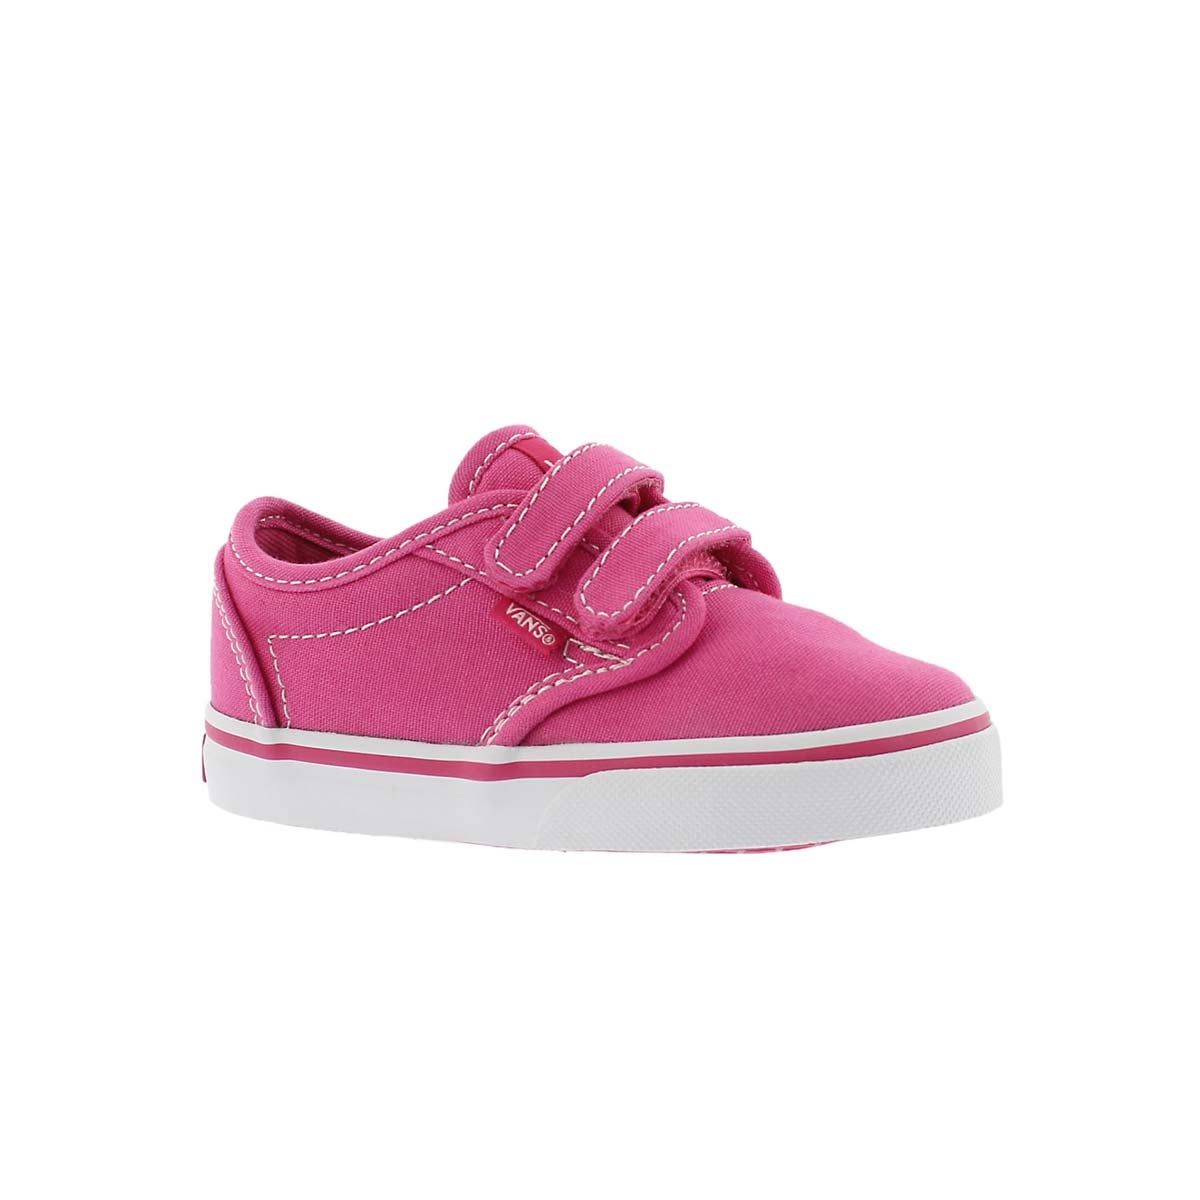 Infants' ATWOOD magenta/white sneakers